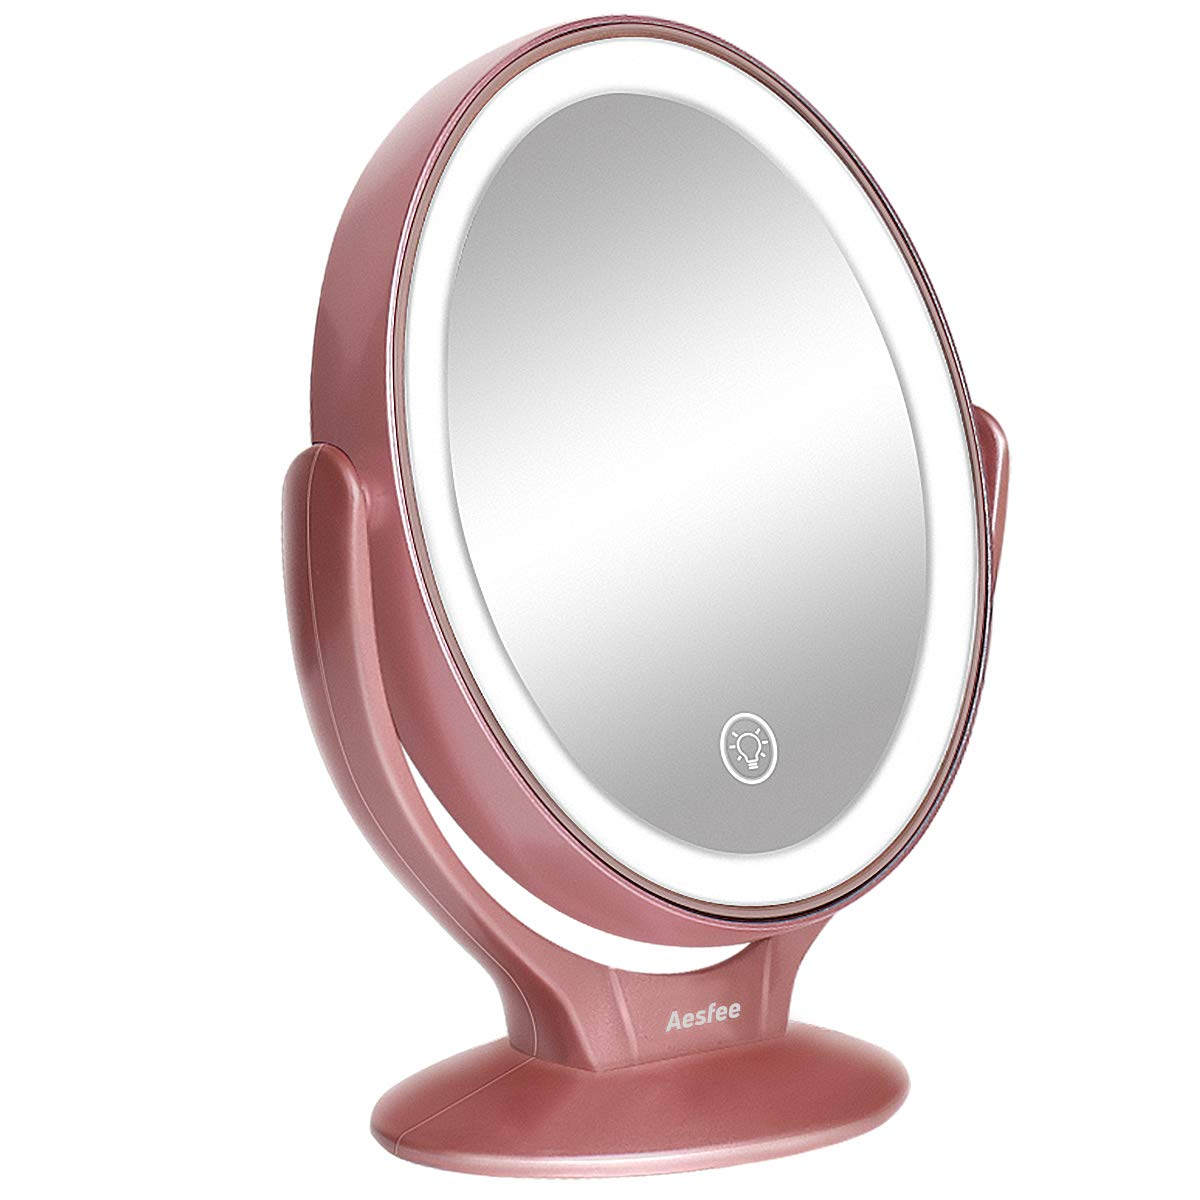 Aesfee 1x/7x Lighted Tabletop Makeup Mirror Reviews